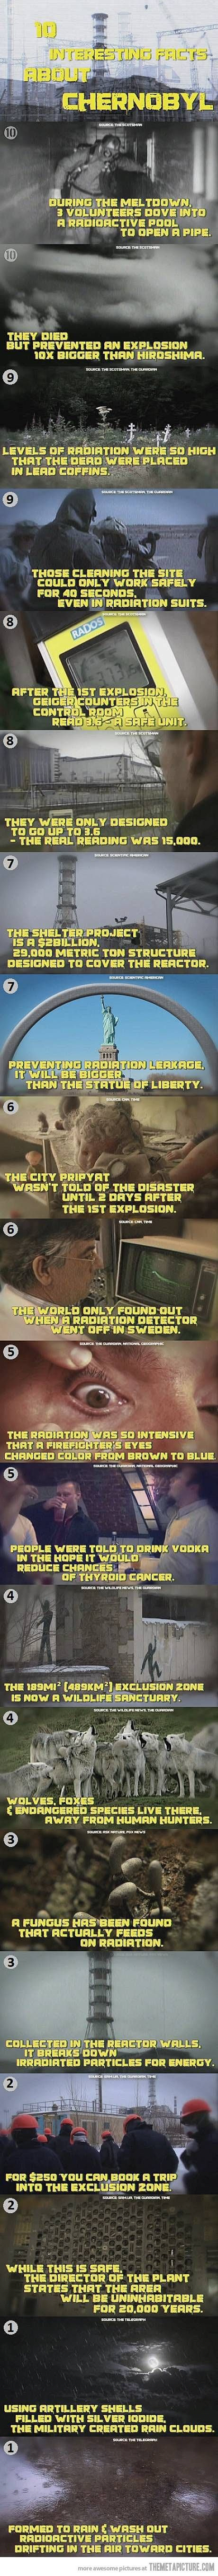 10 Facts about the Chernobyl disaster you didn't know